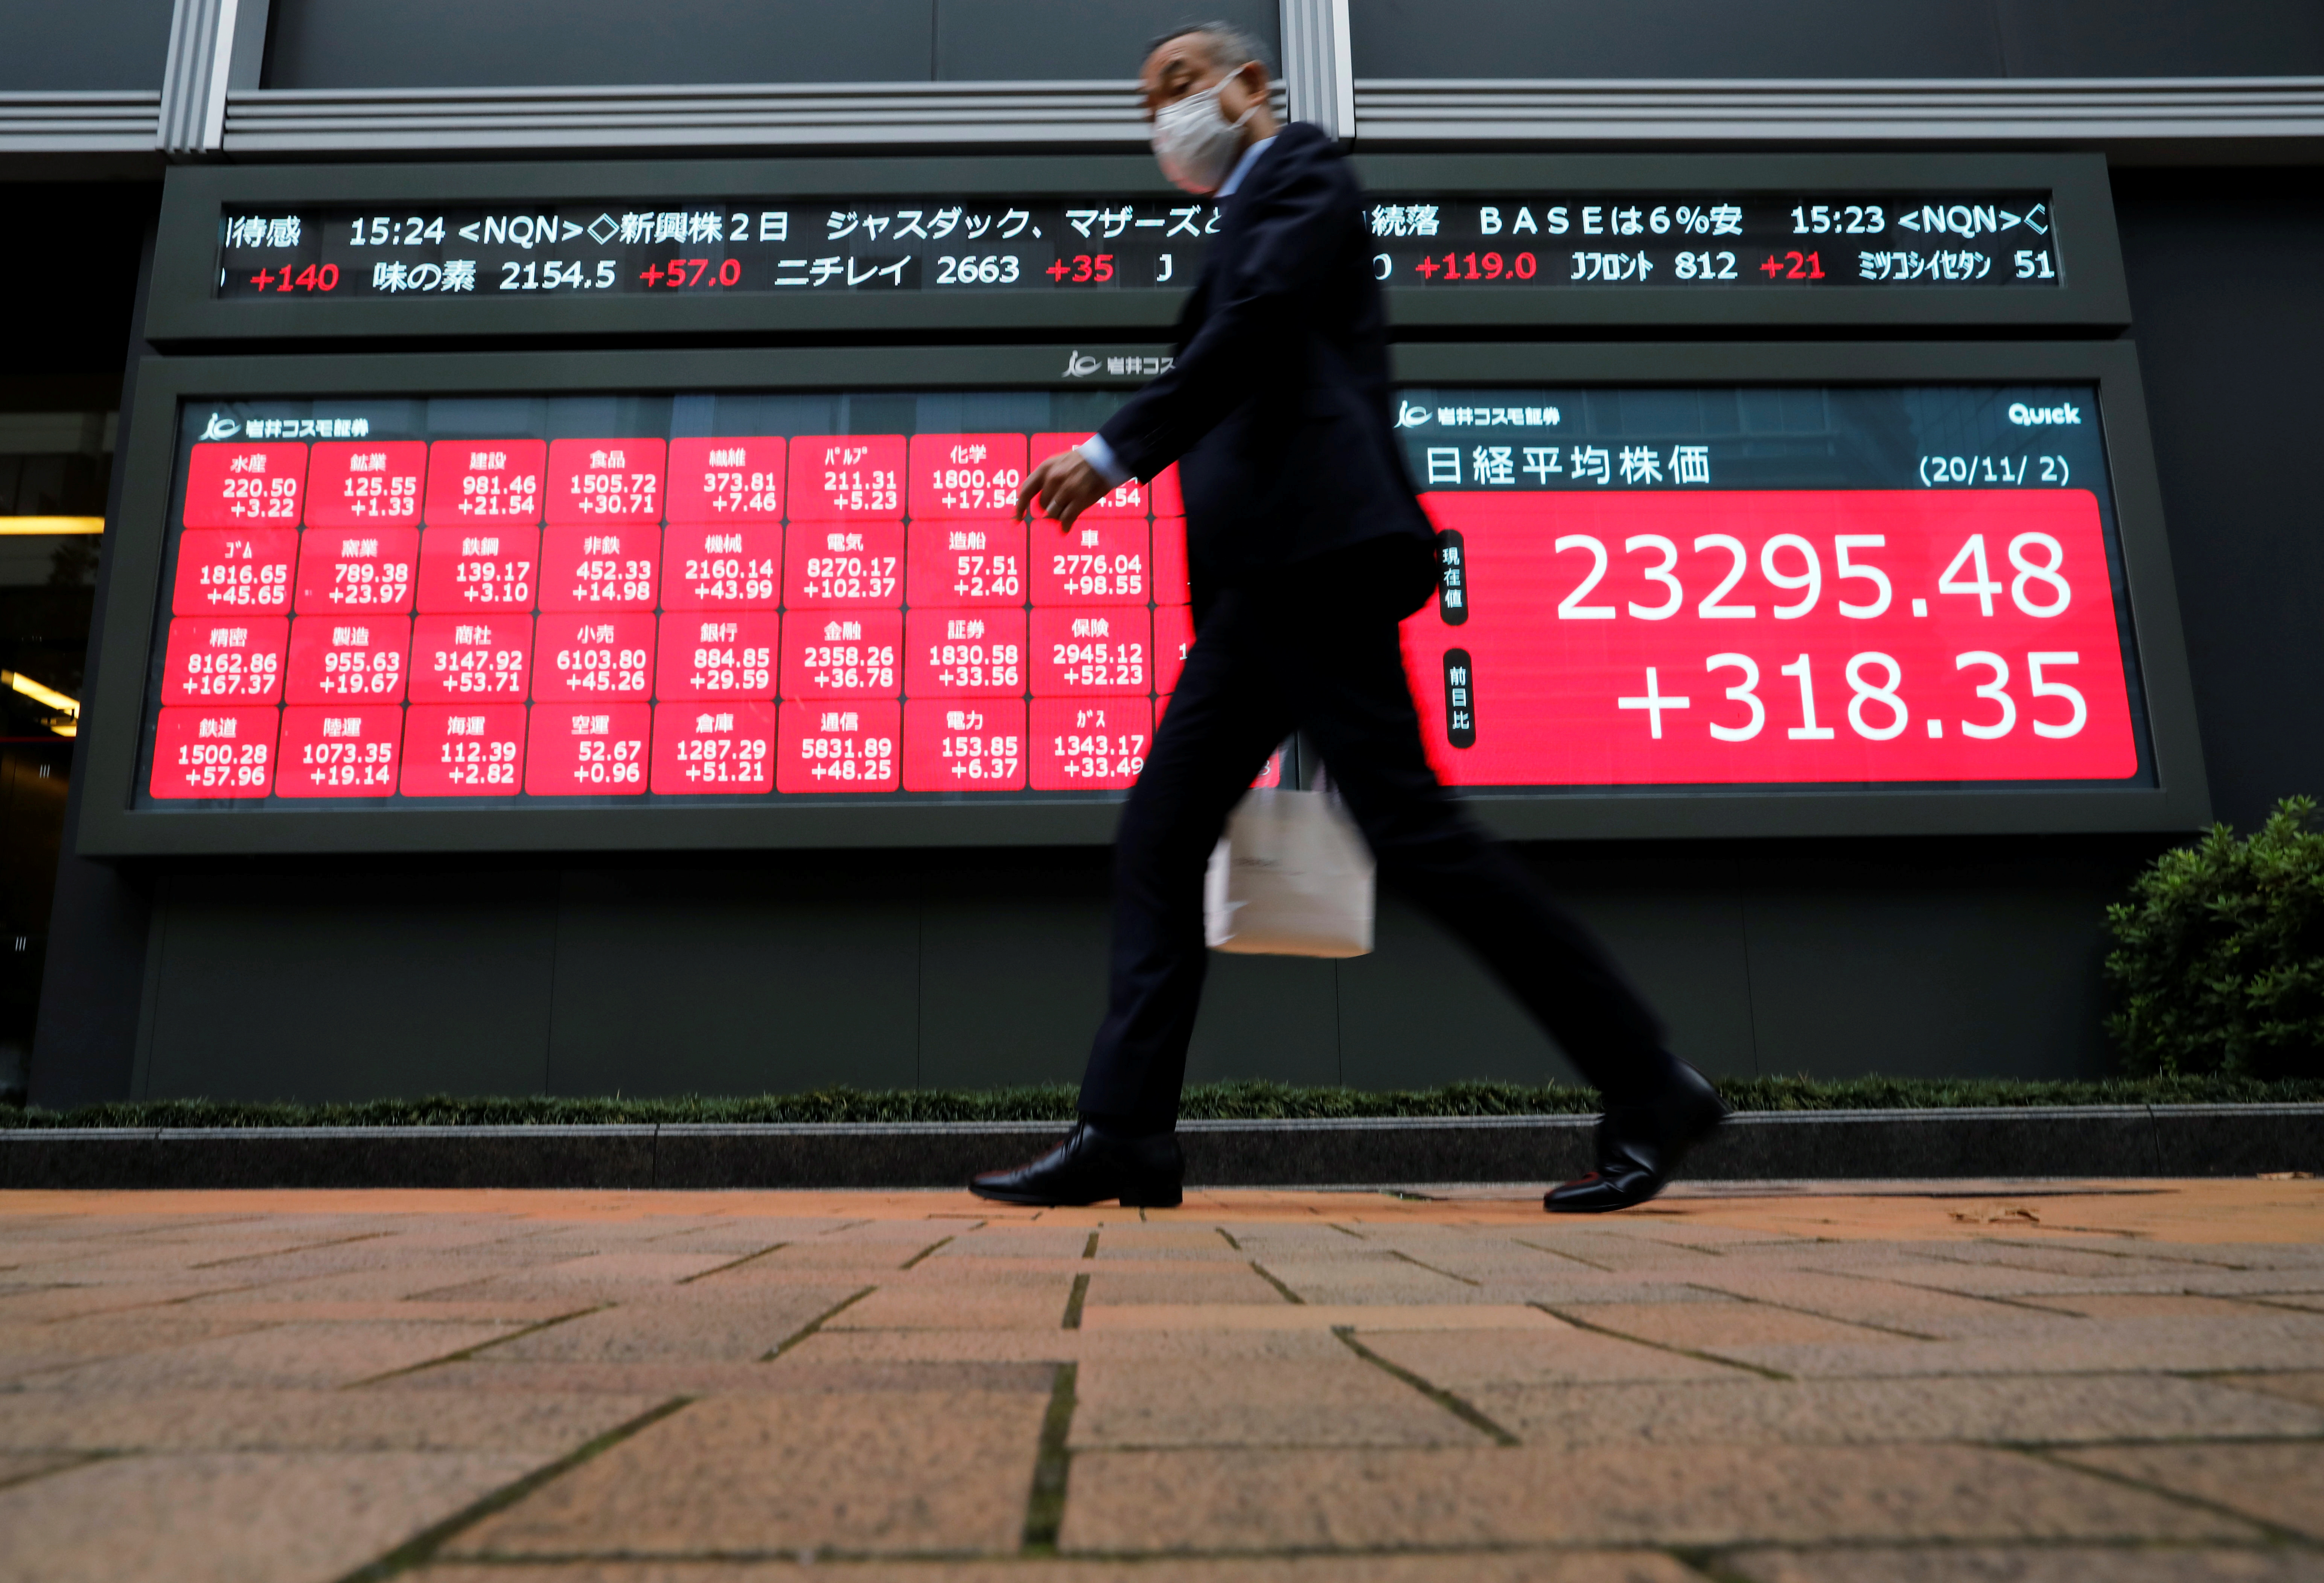 A man wearing a protective face mask walks past a stock quotation board outside a brokerage, amid the coronavirus disease (COVID-19) outbreak, in Tokyo, Japan November 2, 2020. REUTERS/Issei Kato